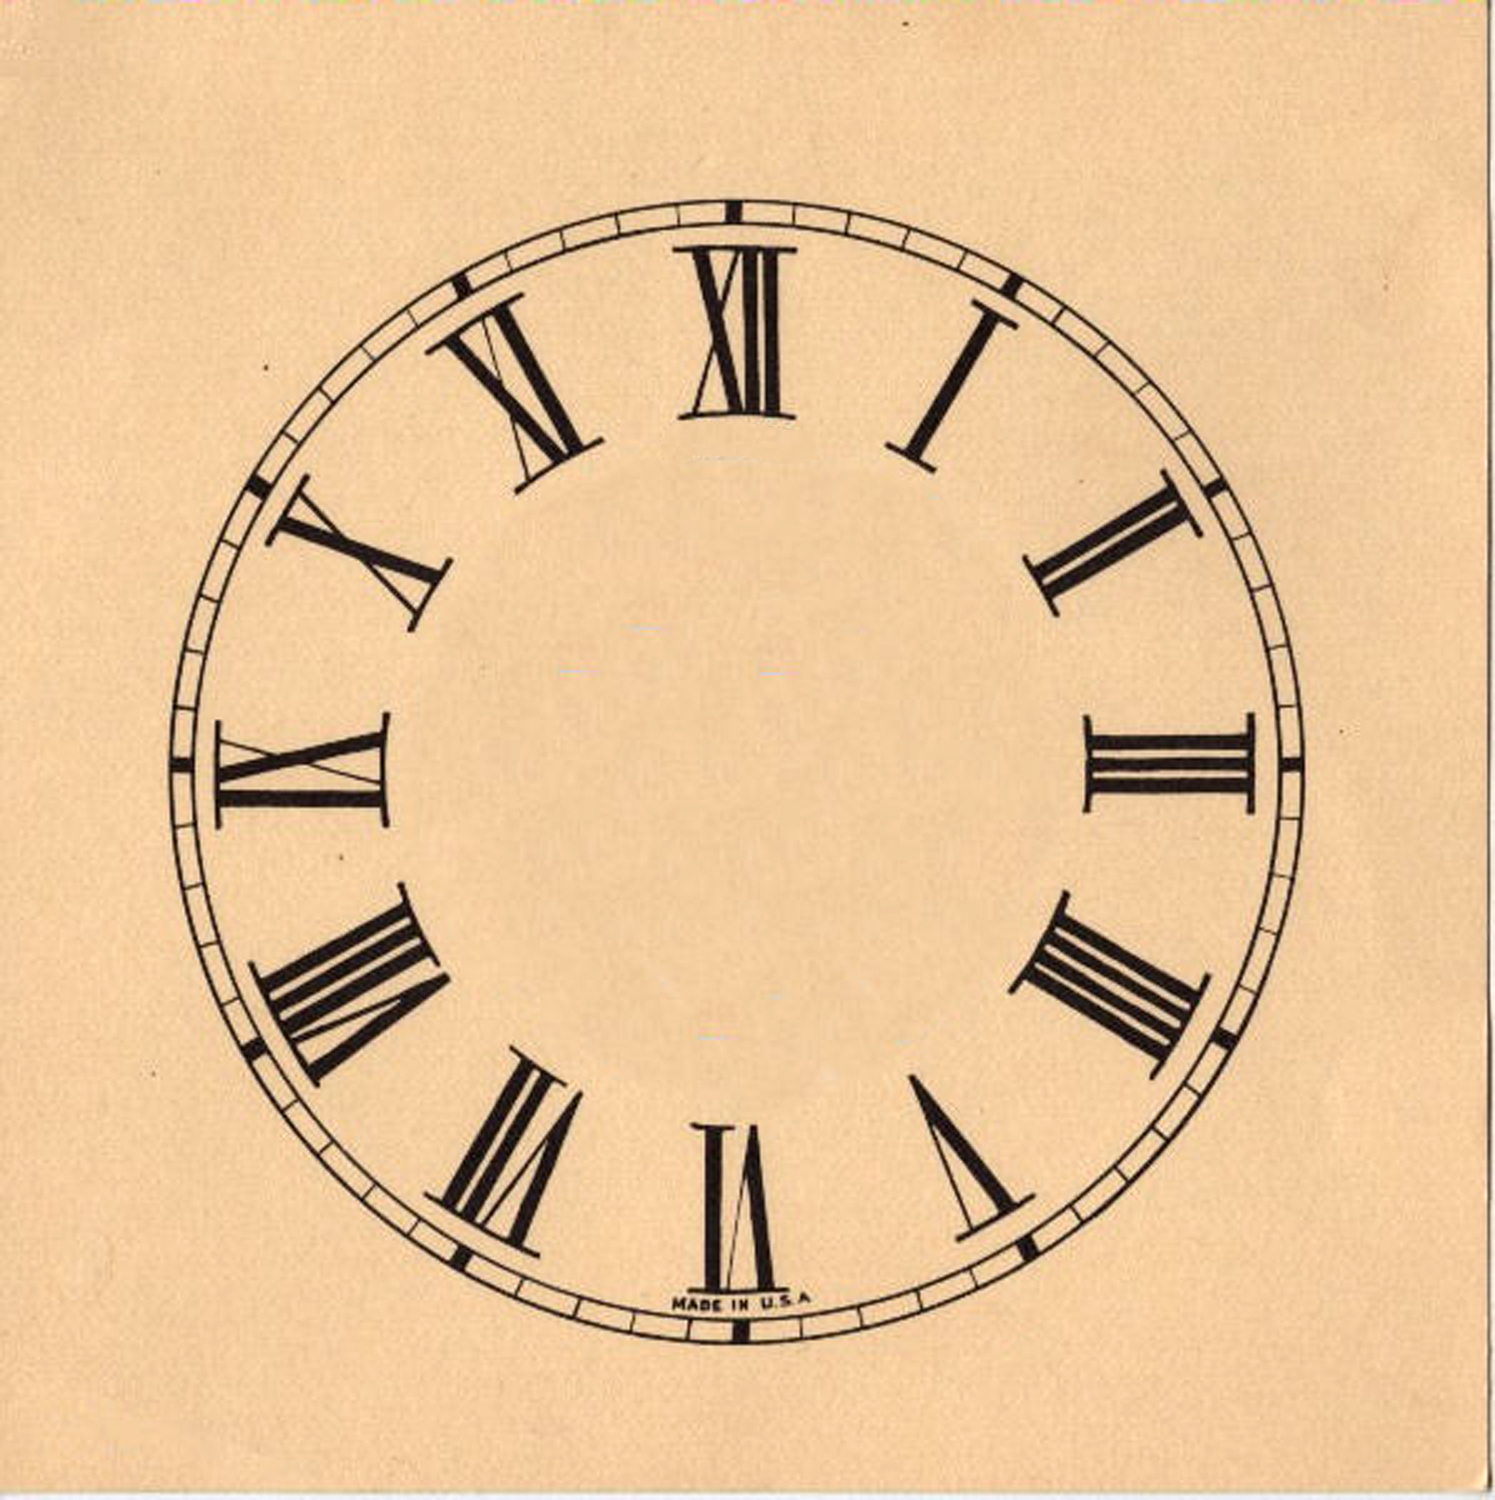 This Is Another Really Great Vintage Clock Face One Has With Roman Numerals You Could Also Print Up And Use It To Make Your Own Clocks